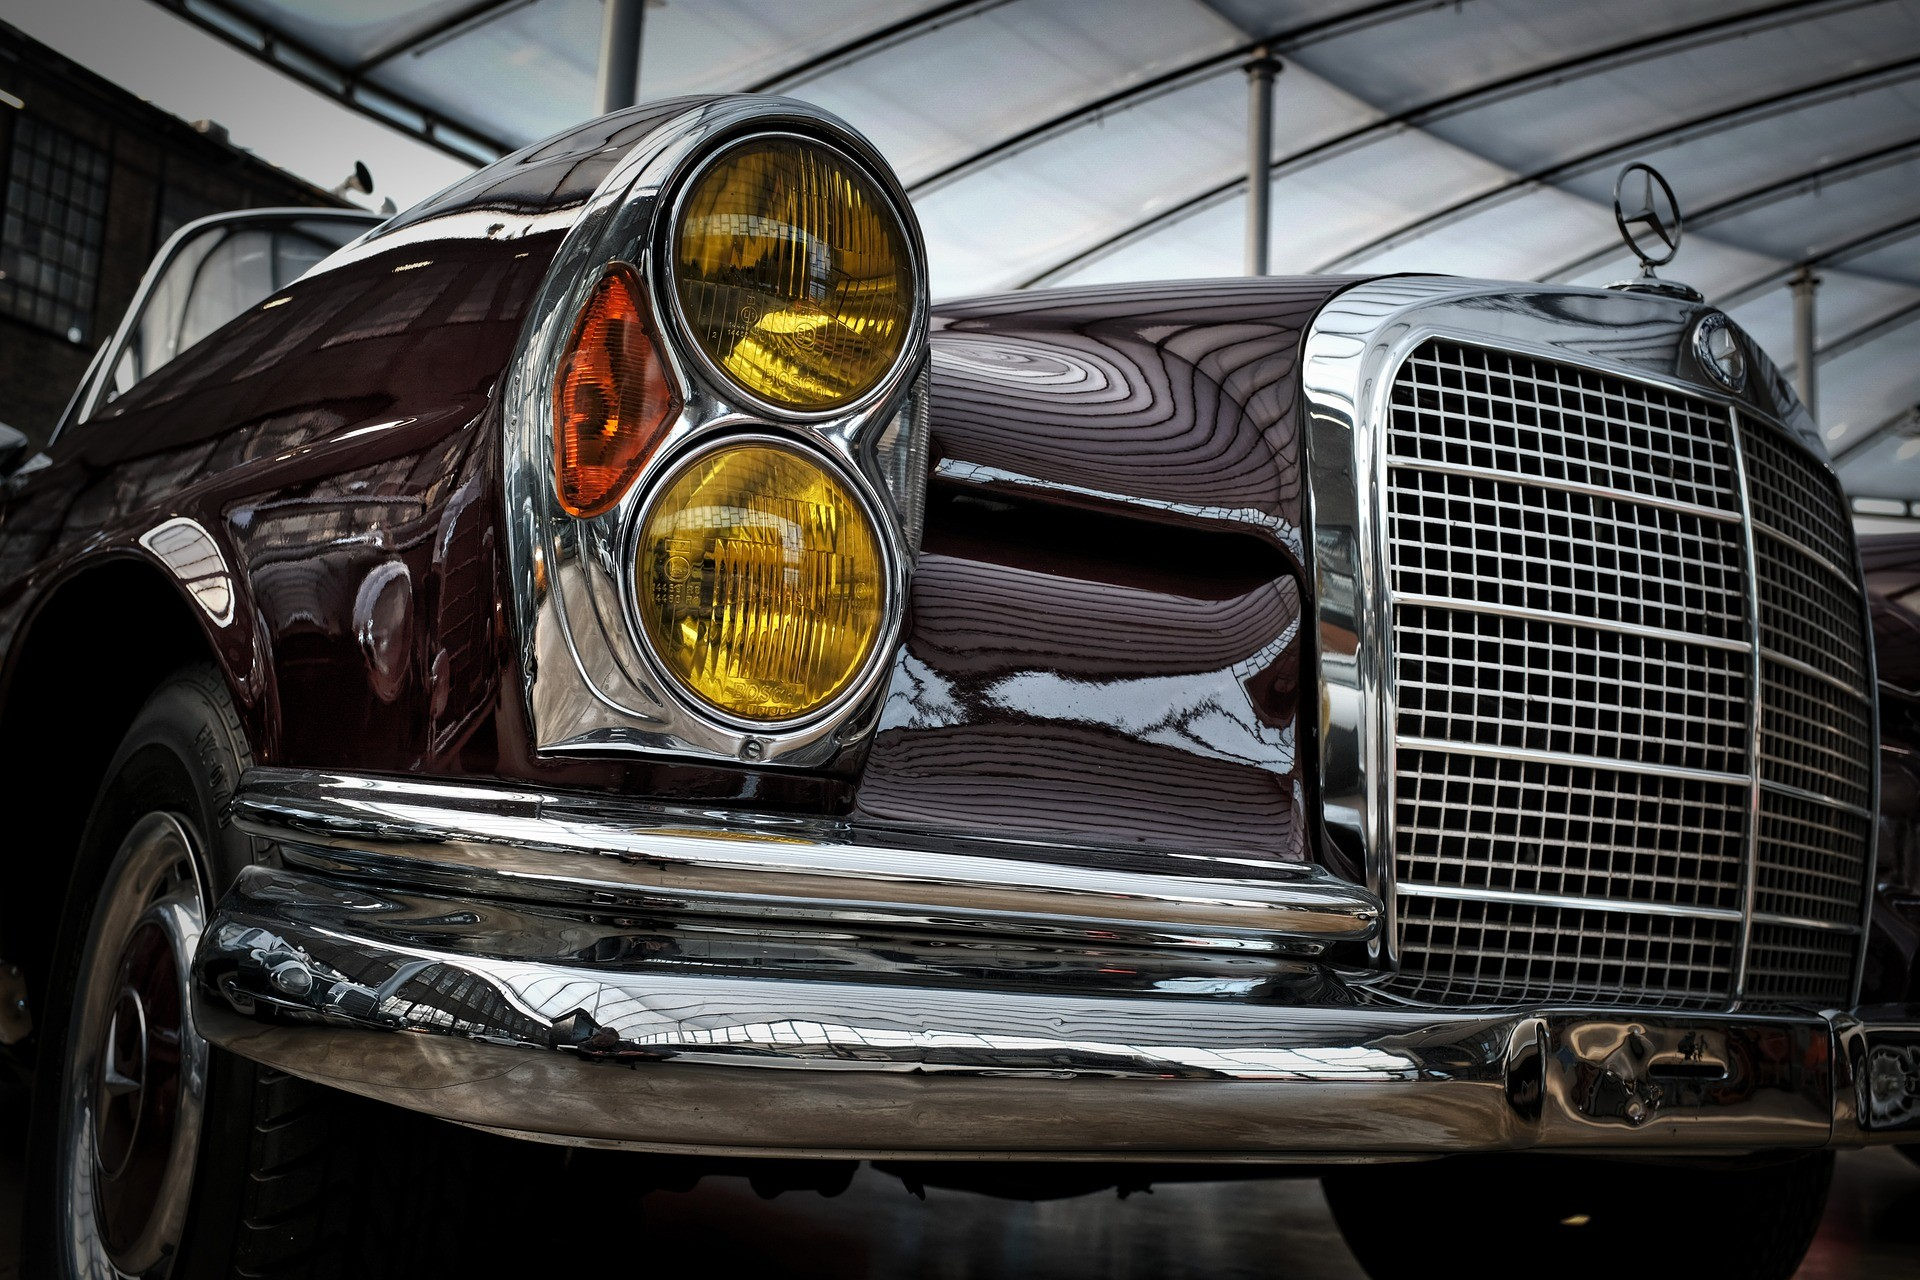 Import Car From Germany – Mercedes